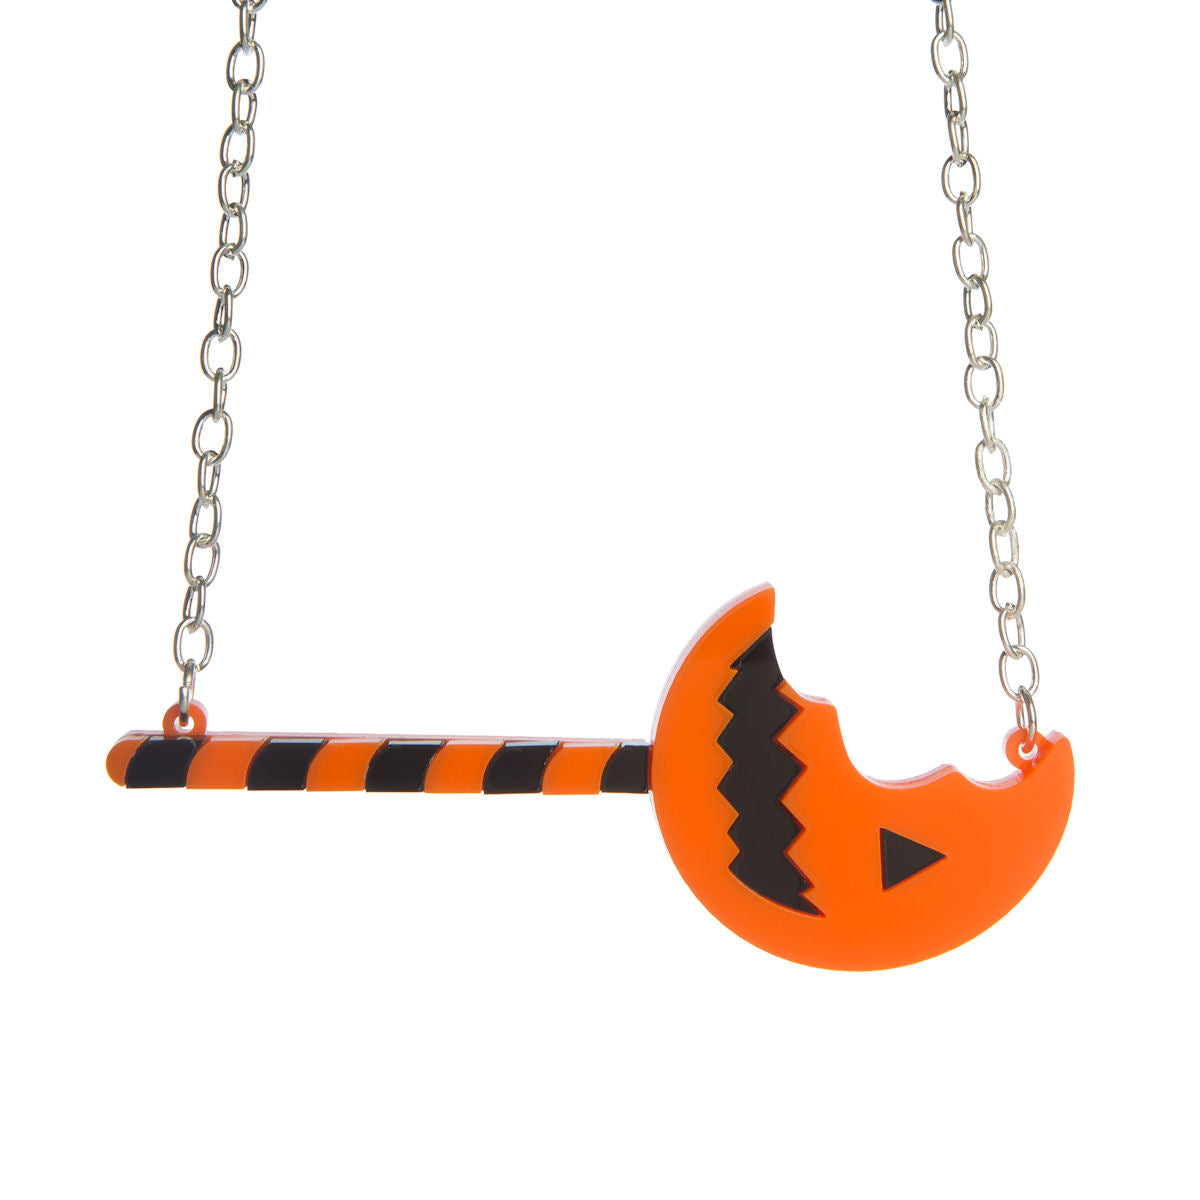 Sugar & Vice Halloween Treat Necklace